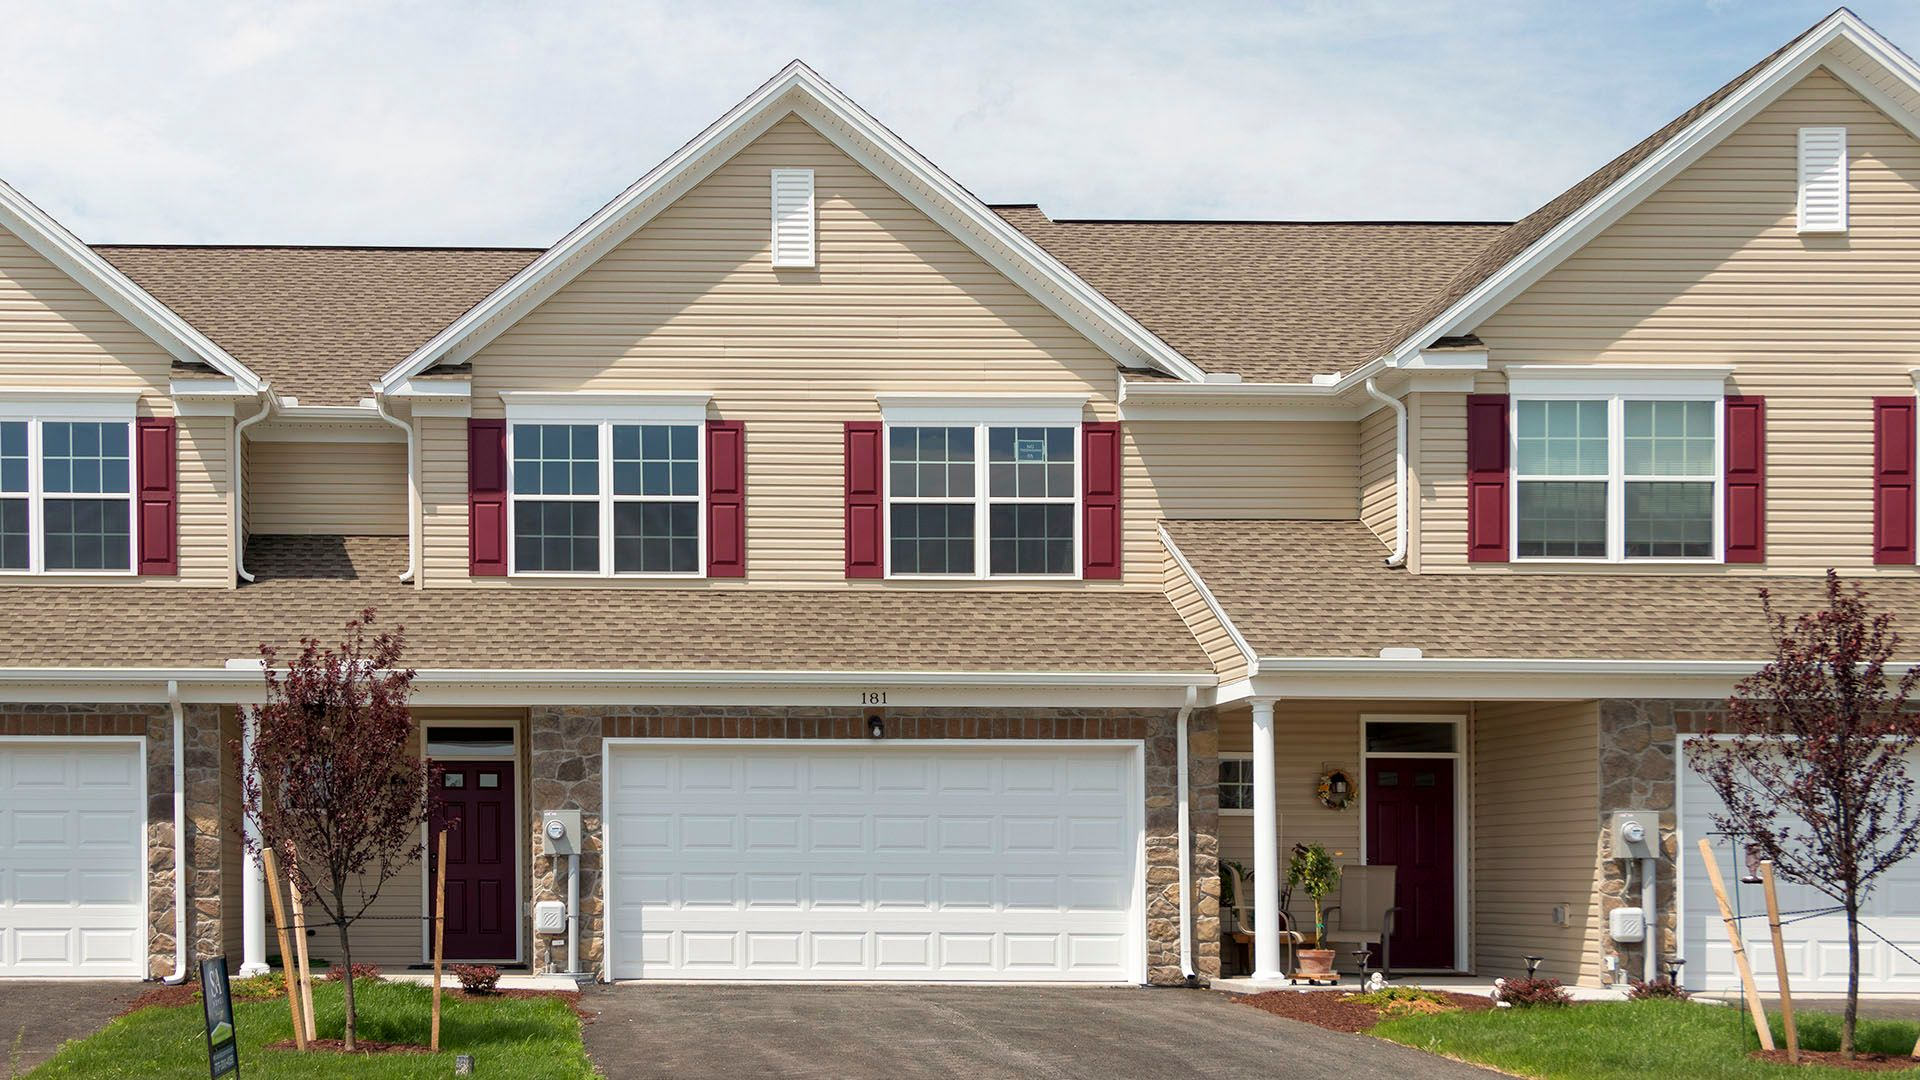 Cannon RIdge:Townhome exterior